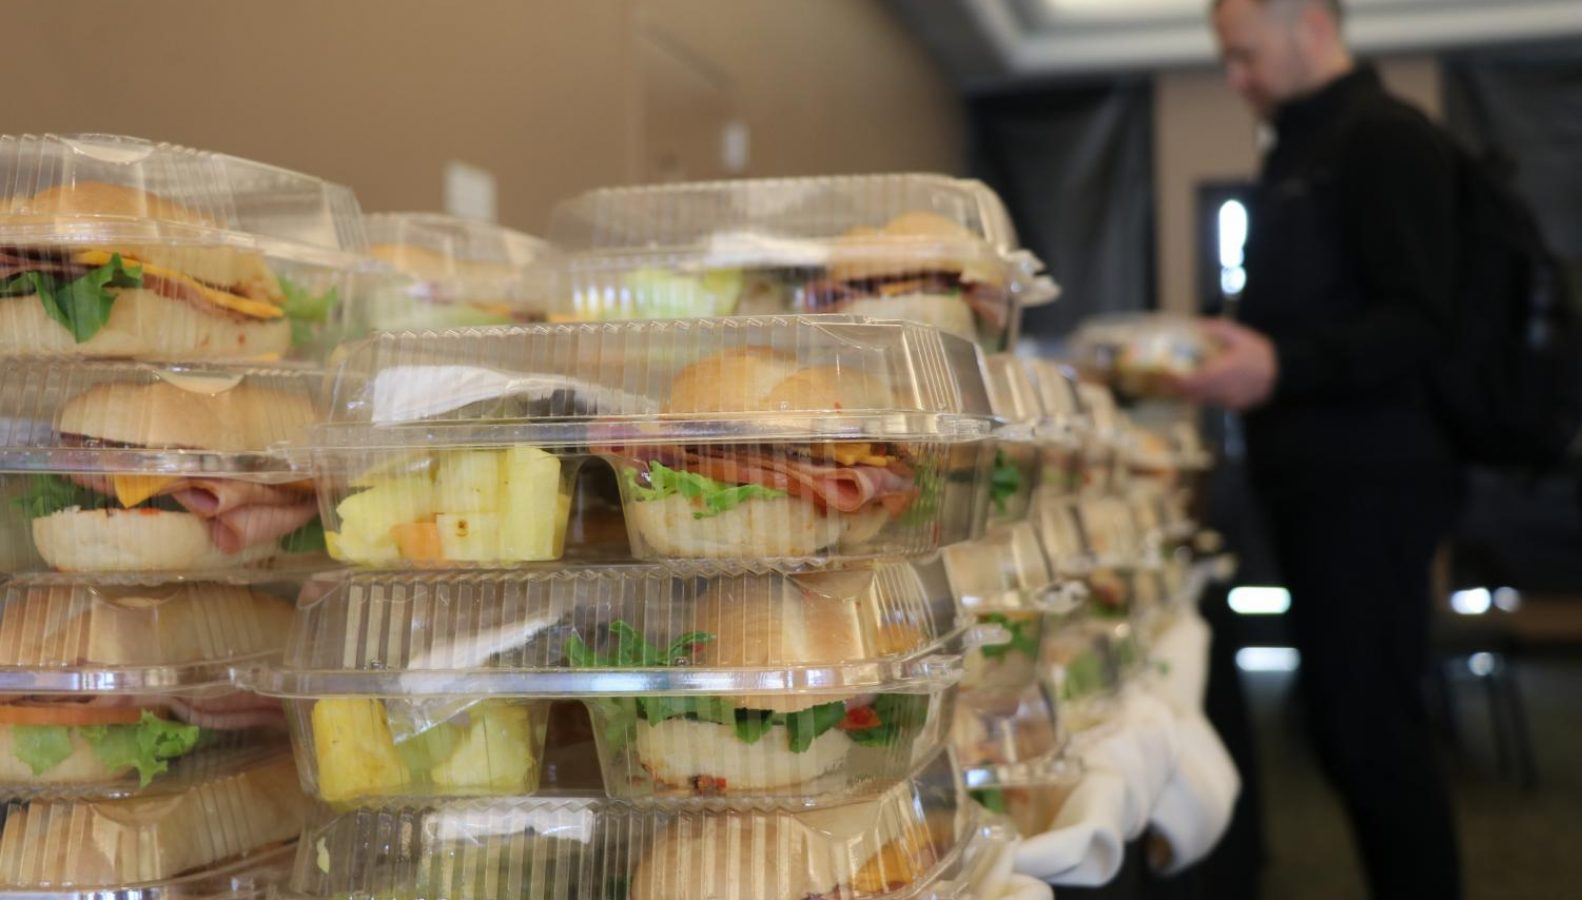 Leftover sandwiches were provided by Epicure and given to students through Epicure Extras after the Student Panel on Jan. 8. (Photo by Kelly Kiernan – The State Hornet)